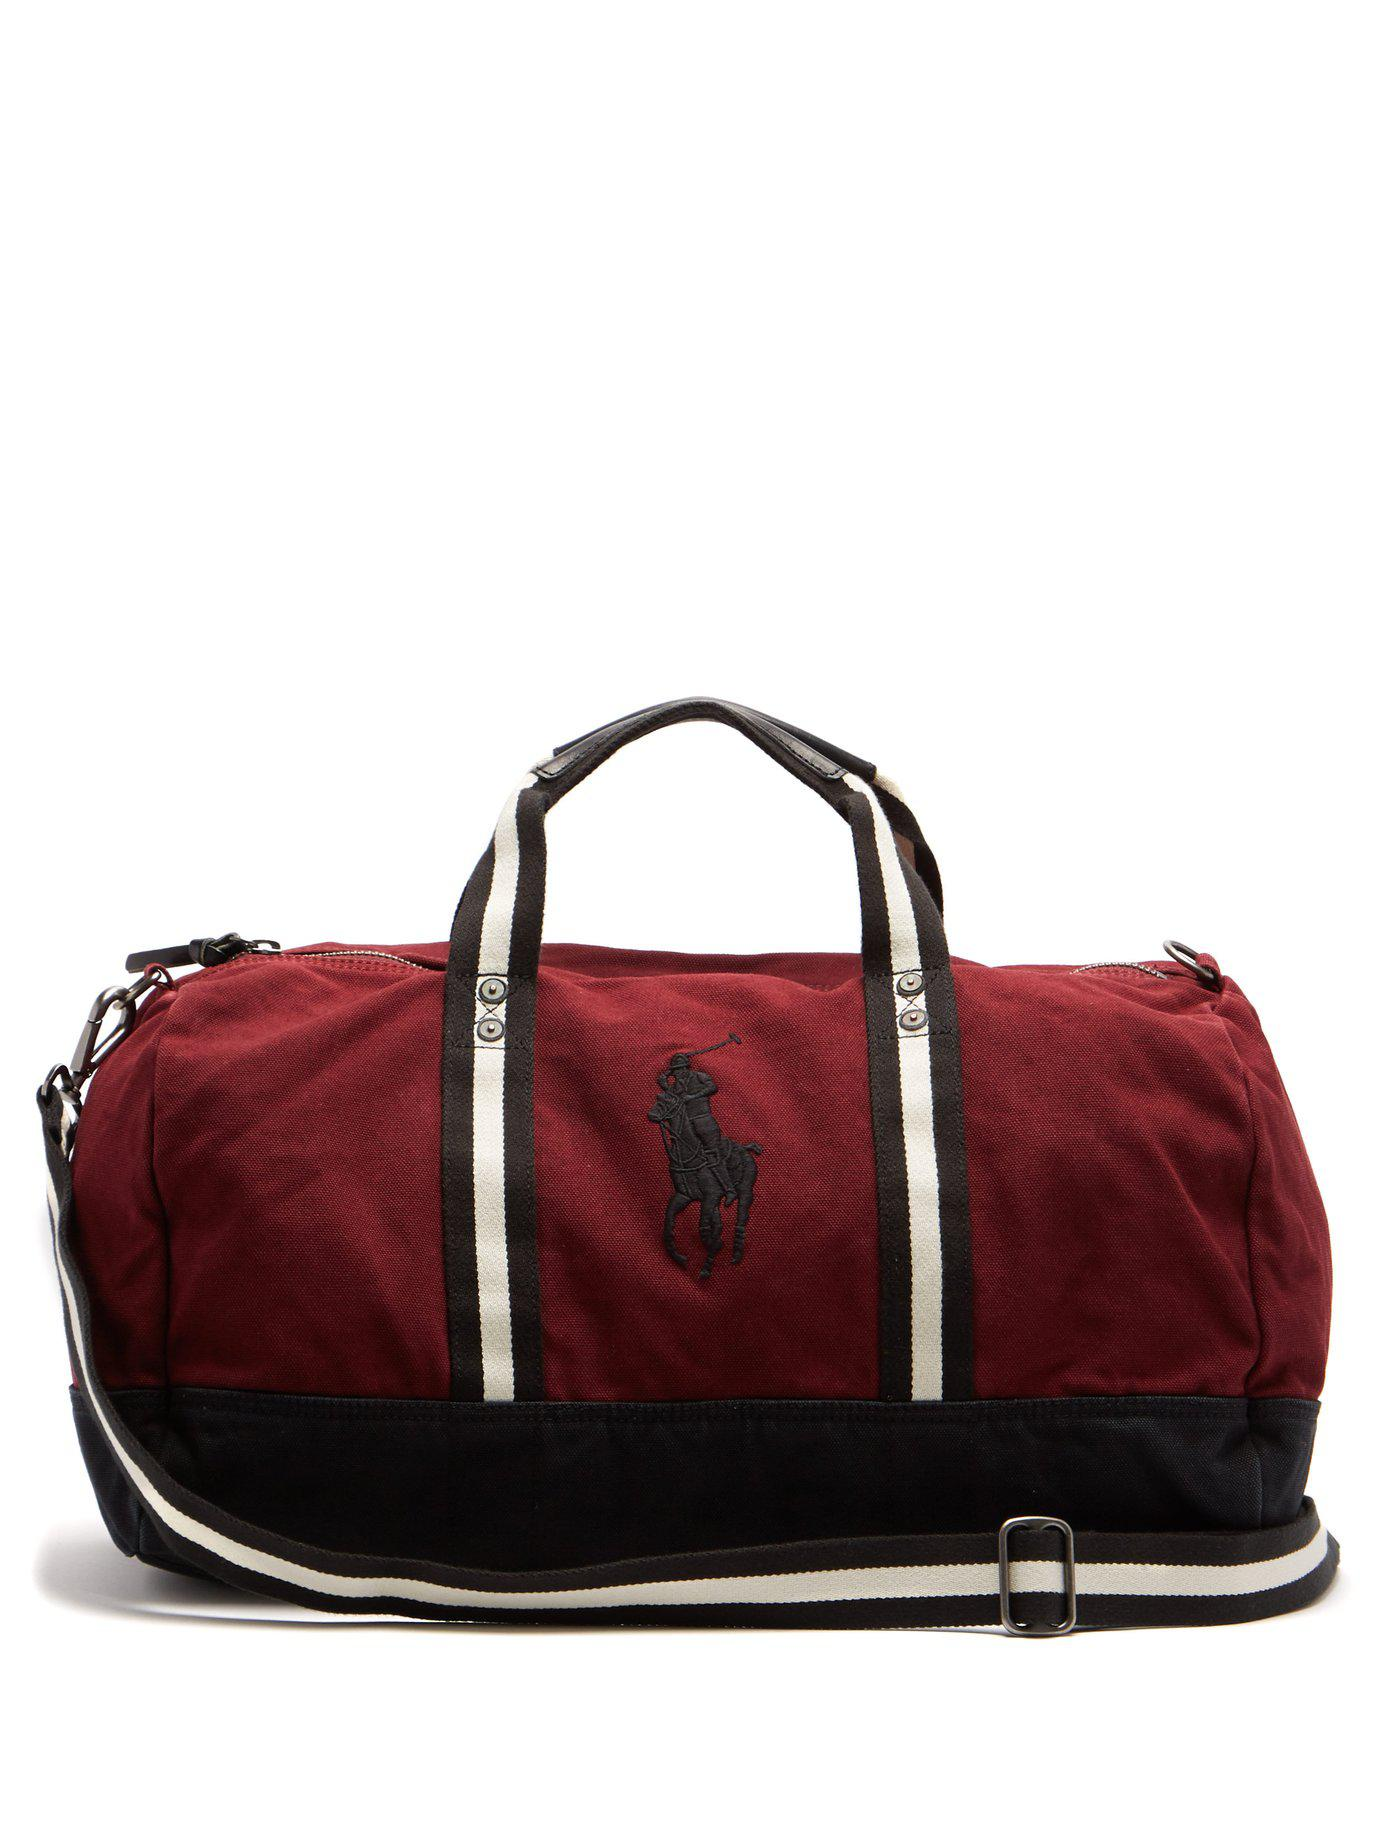 Lyst - Polo Ralph Lauren Cotton-canvas Holdall in Red for Men - Save ... 70e8d51273